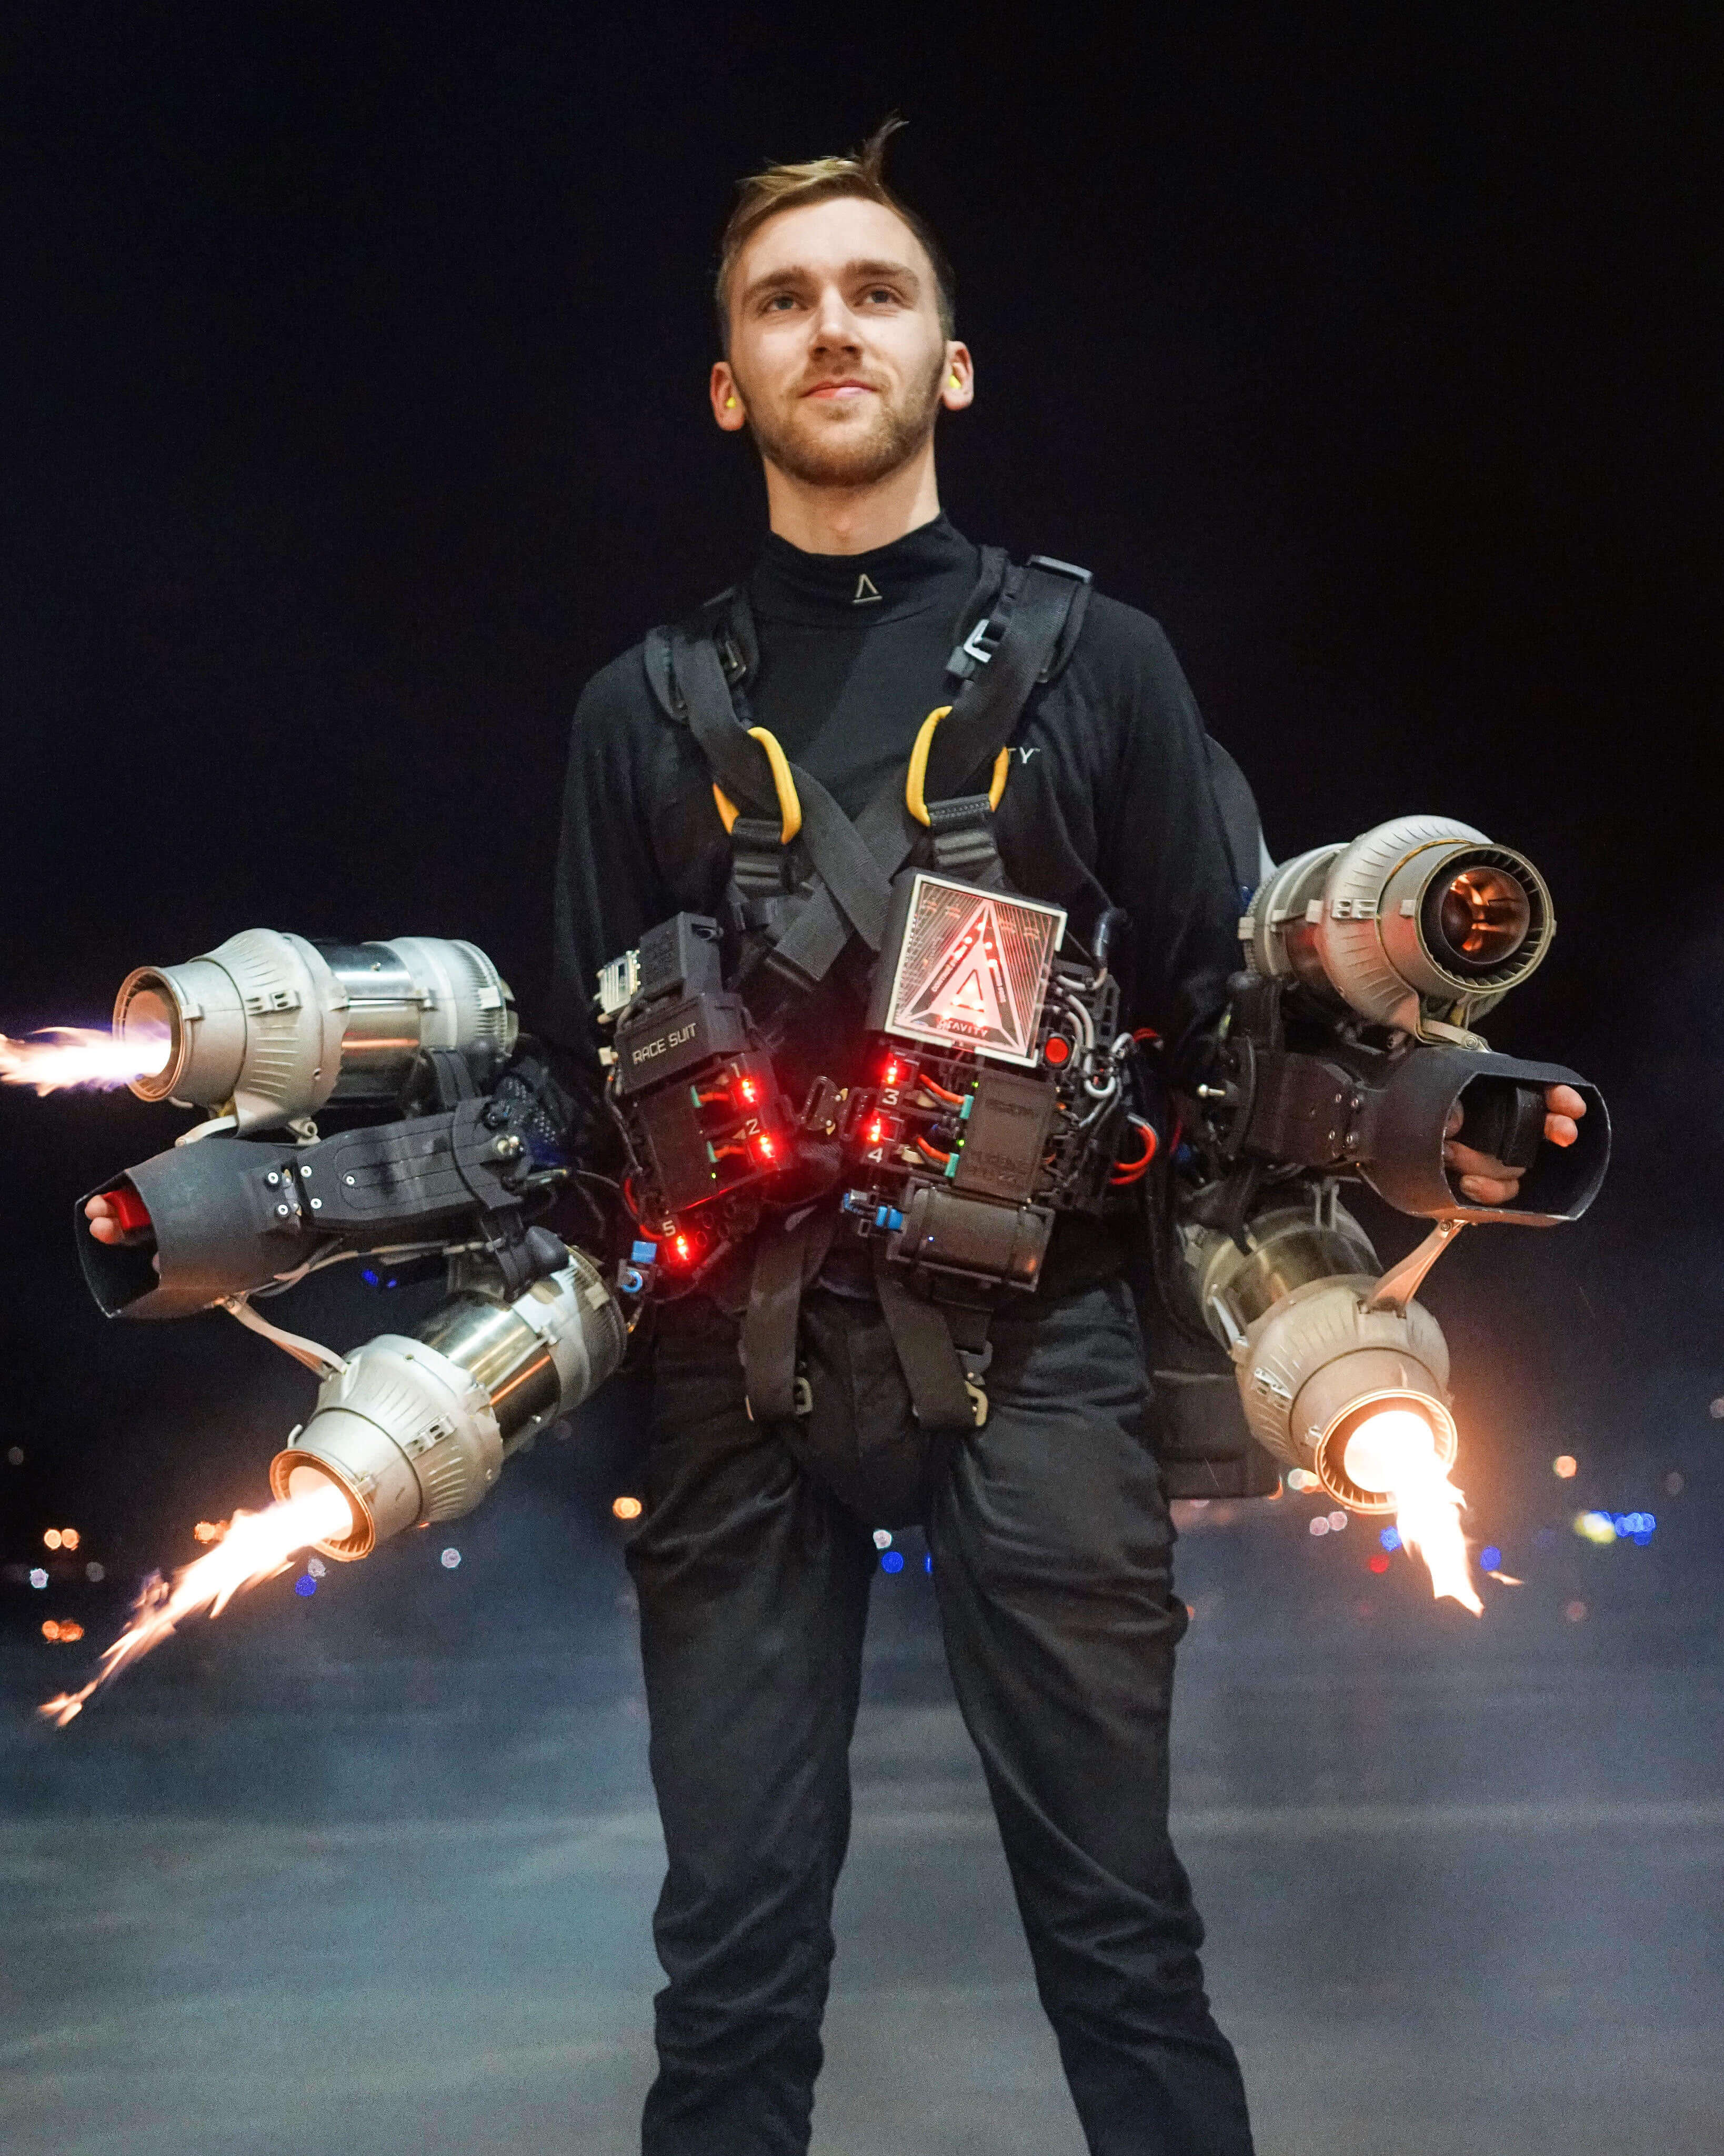 Sam Rogers, founder of AX wearing the Gravity Jet Suit